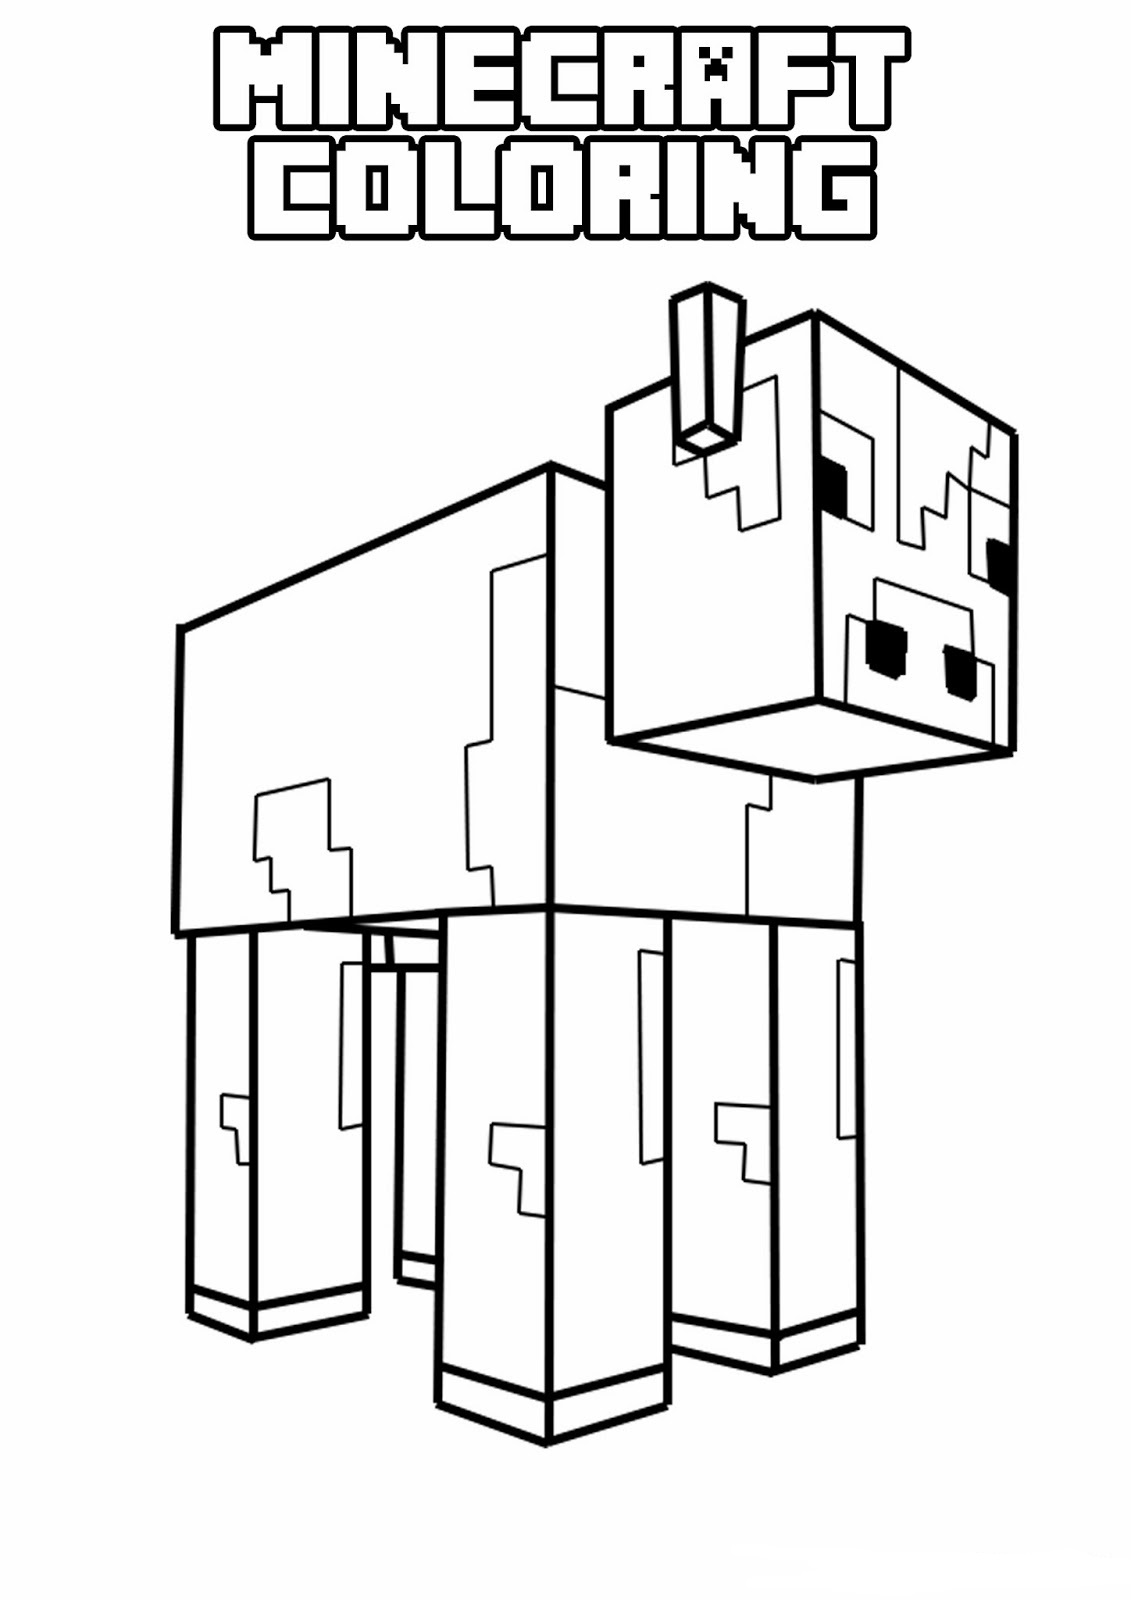 creeper coloring pages minecraft creeper coloring pages coloring home pages creeper coloring